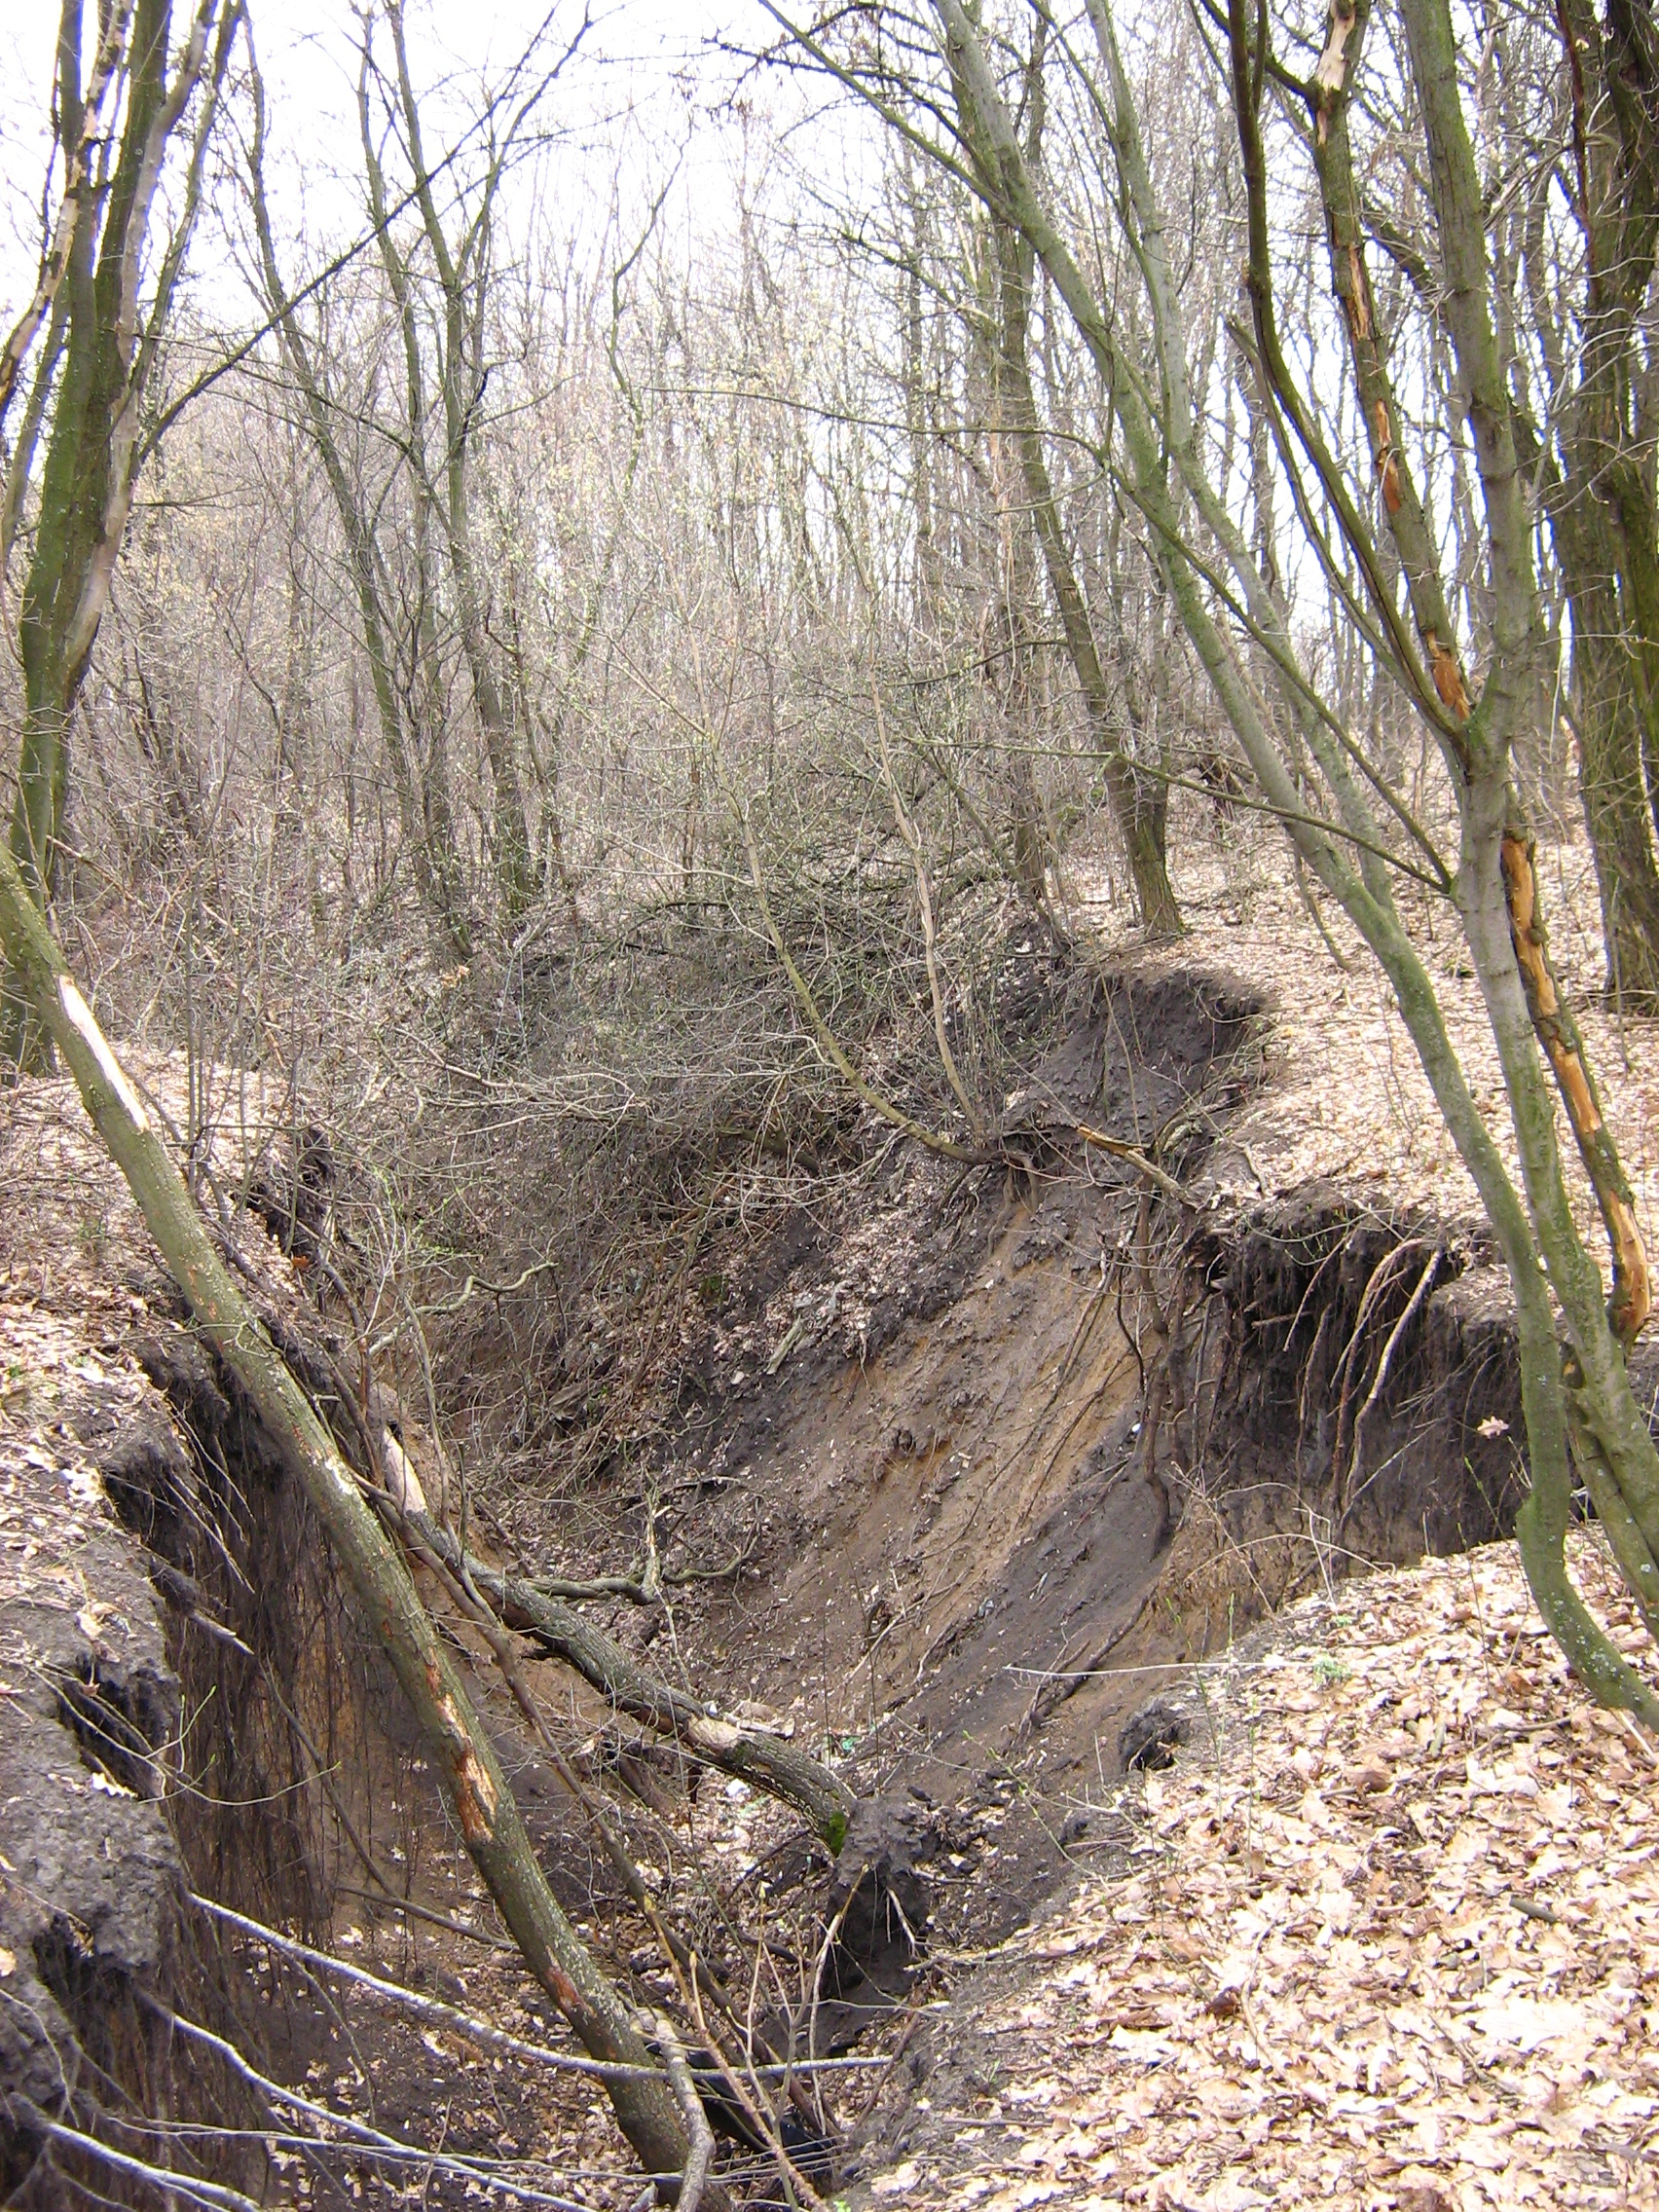 http://dic.academic.ru/pictures/wiki/files/71/Gully_in_the_Kharkov_region.jpg